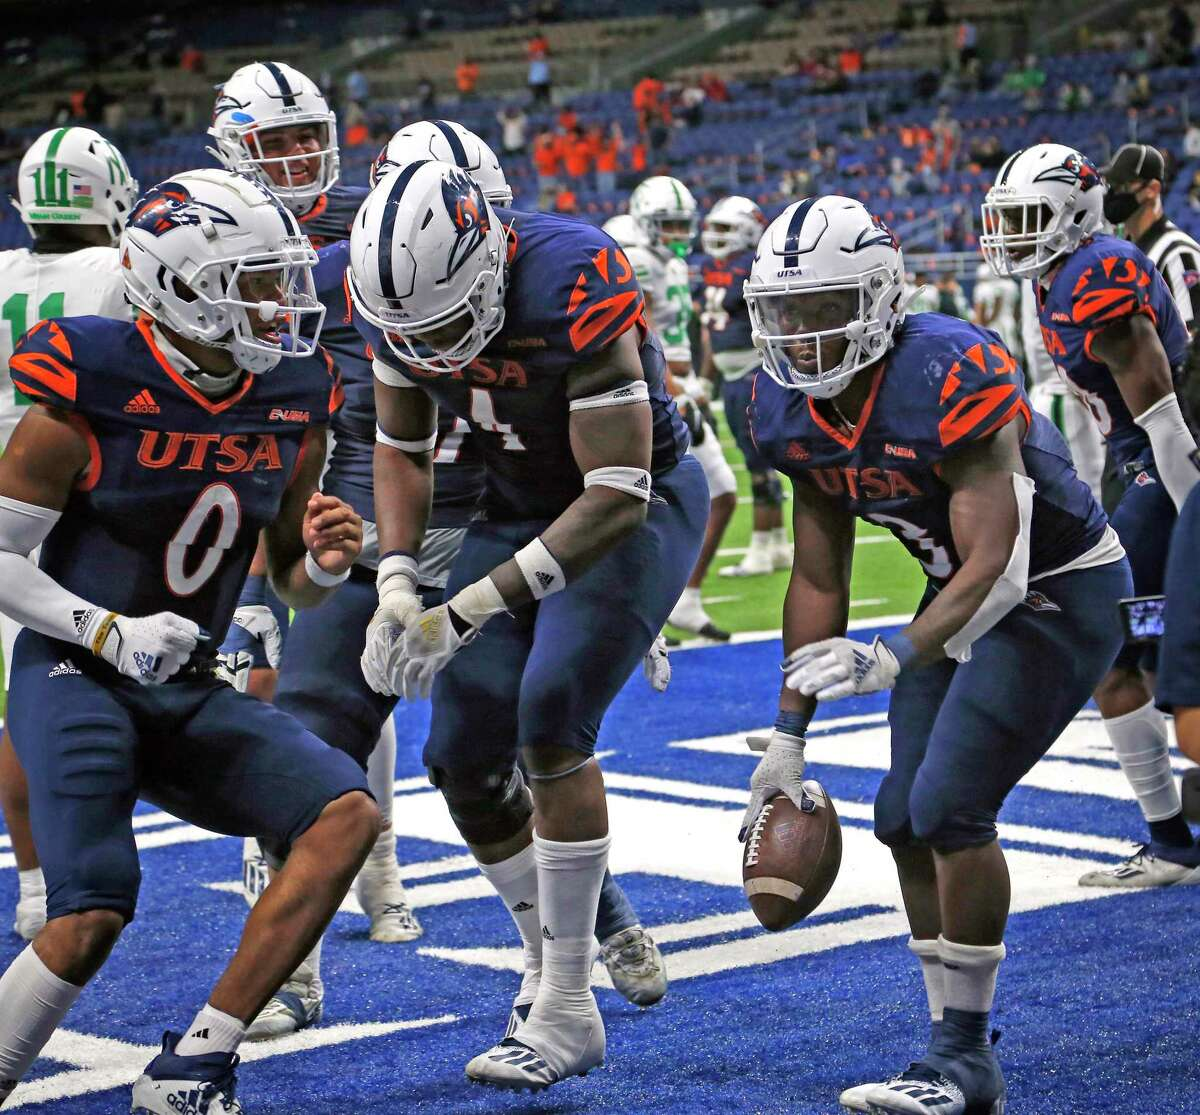 UTSA RB Sincere McCormick,R, celebrates with teammates after his fourth quarter touchdown againstNorth Texas at the Alamodome on Saturday, Nov. 28. 2020.